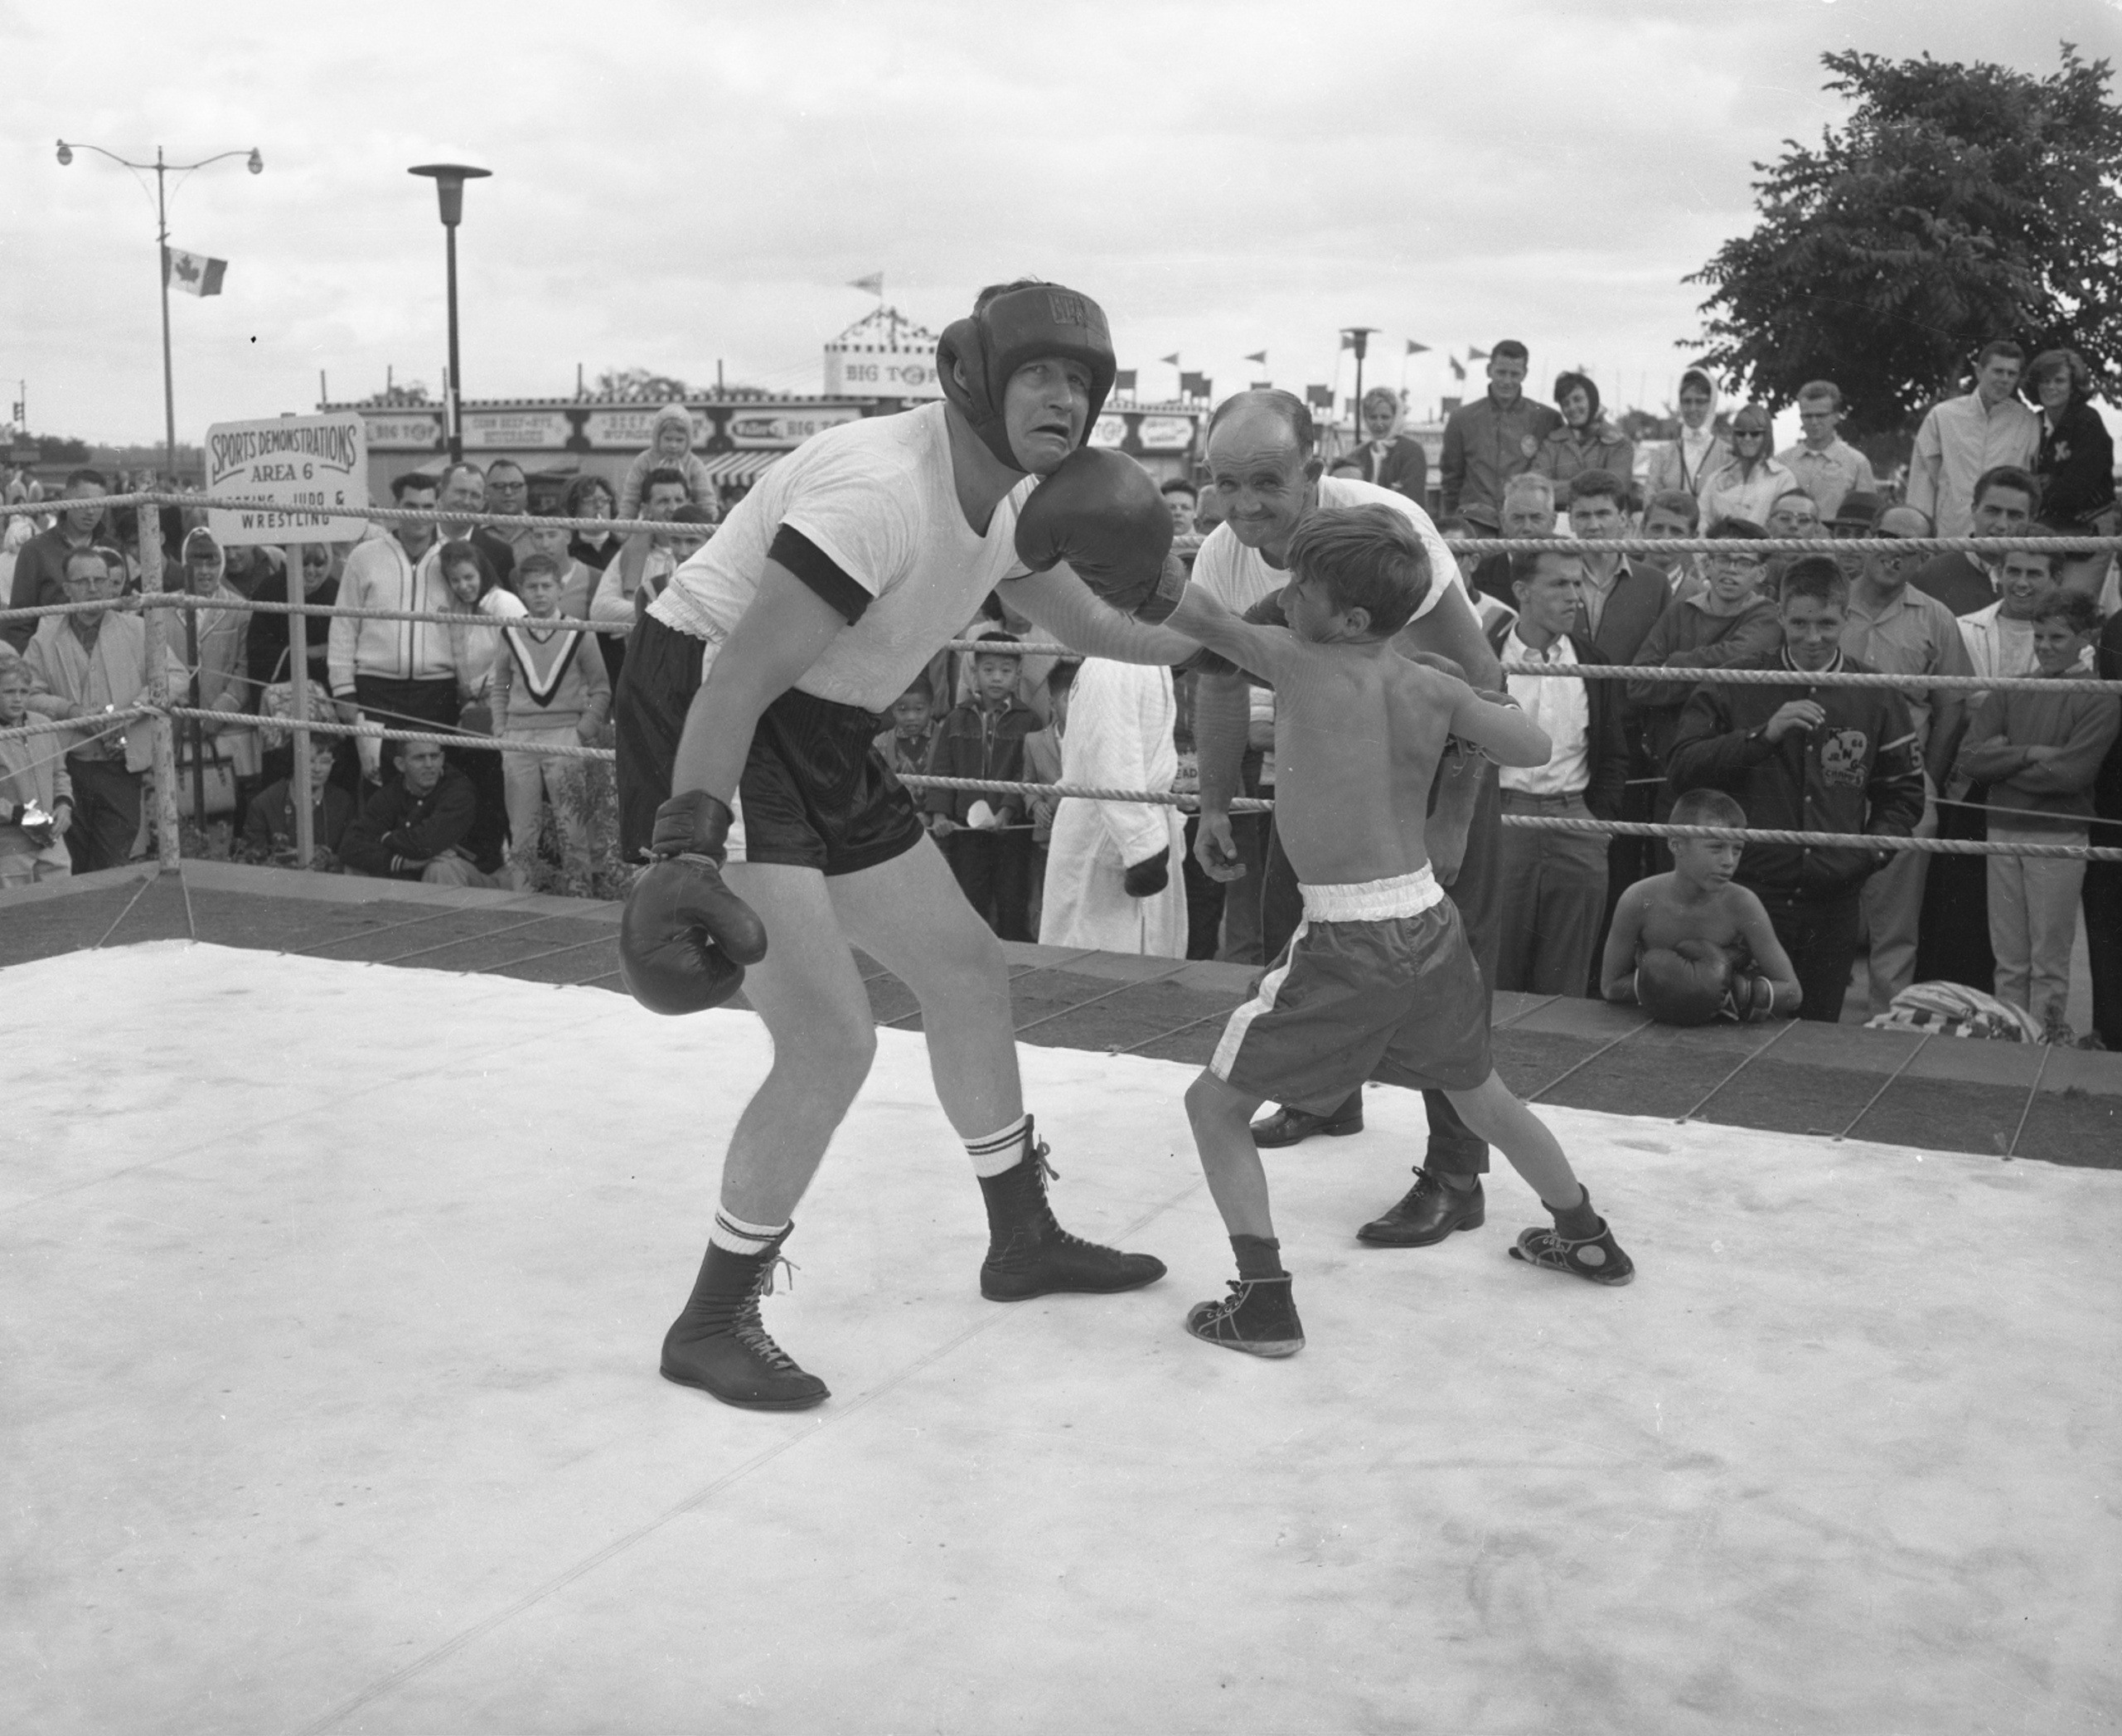 Throwing Punches, Boxing Demonstration August 28, 1965, Canadian National Exhibition Archives, MG5-F1429-I6. Courtesy of the CNEA